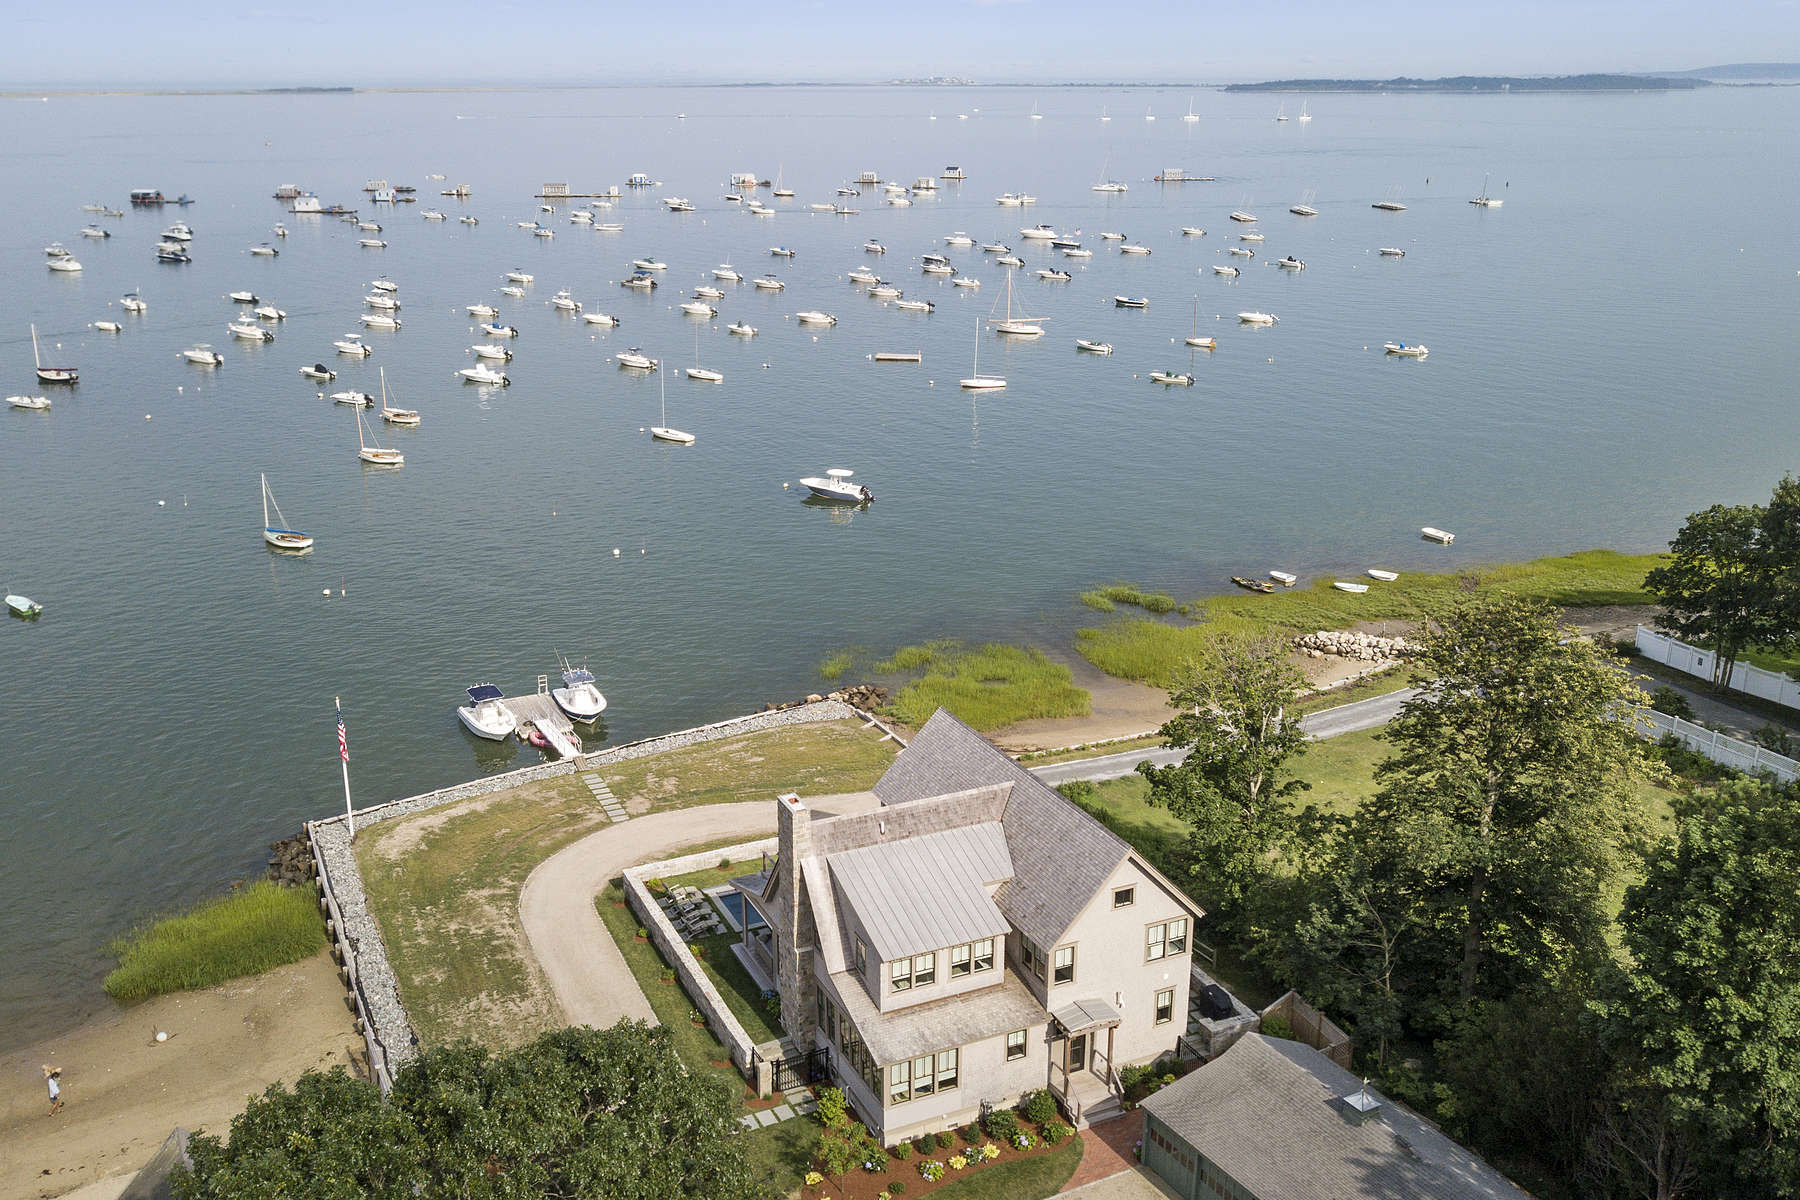 Single Family Home for Active at 46 Winsor Street Duxbury, Massachusetts 02332 United States